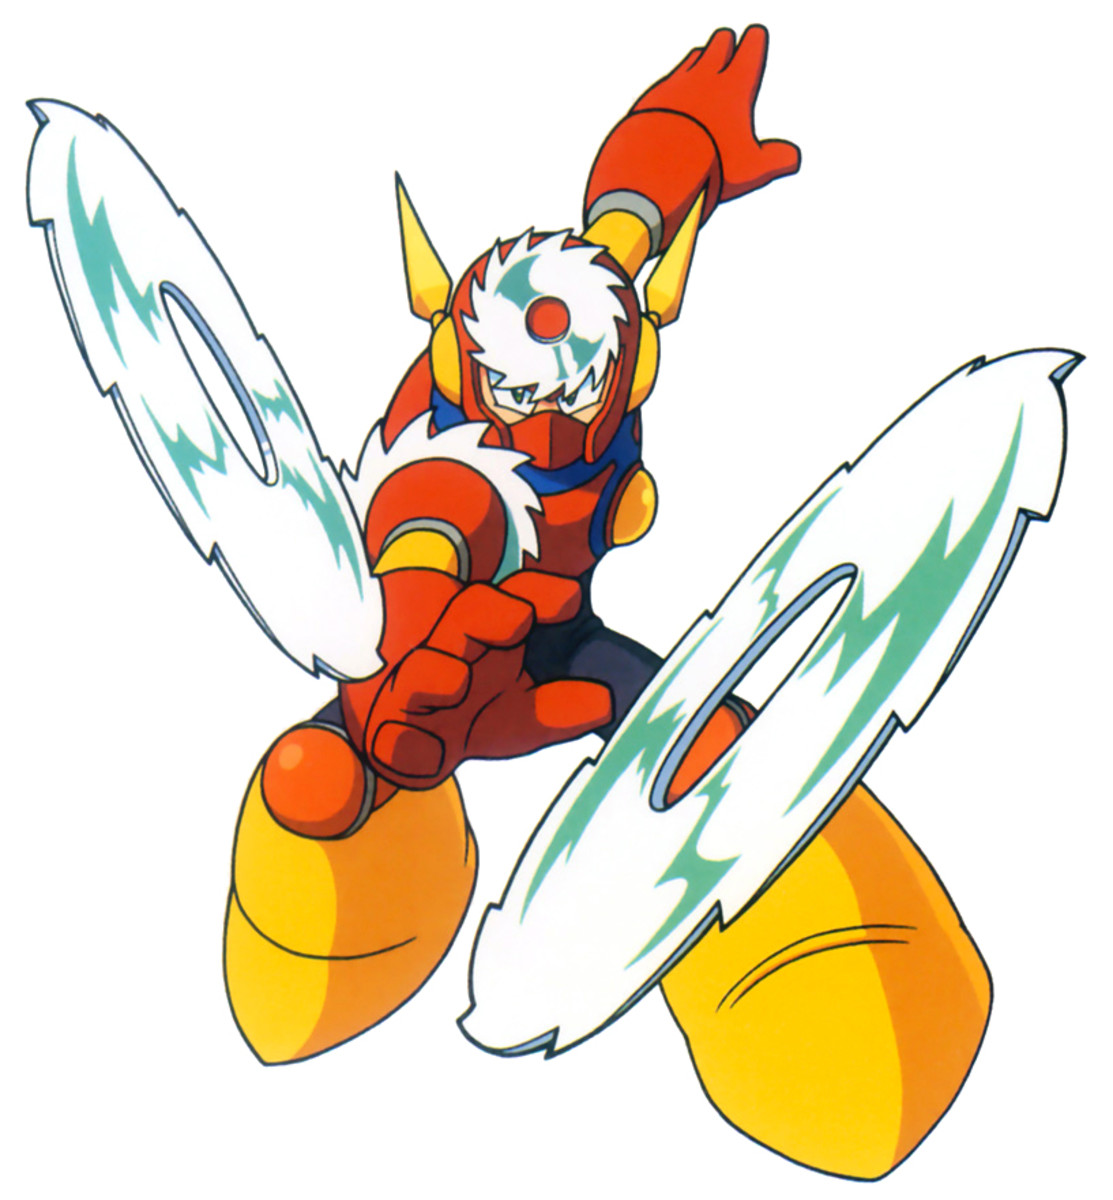 Metal Man is Dr. Wily's first robot master. His weapon consists of ceramic titanium blades.